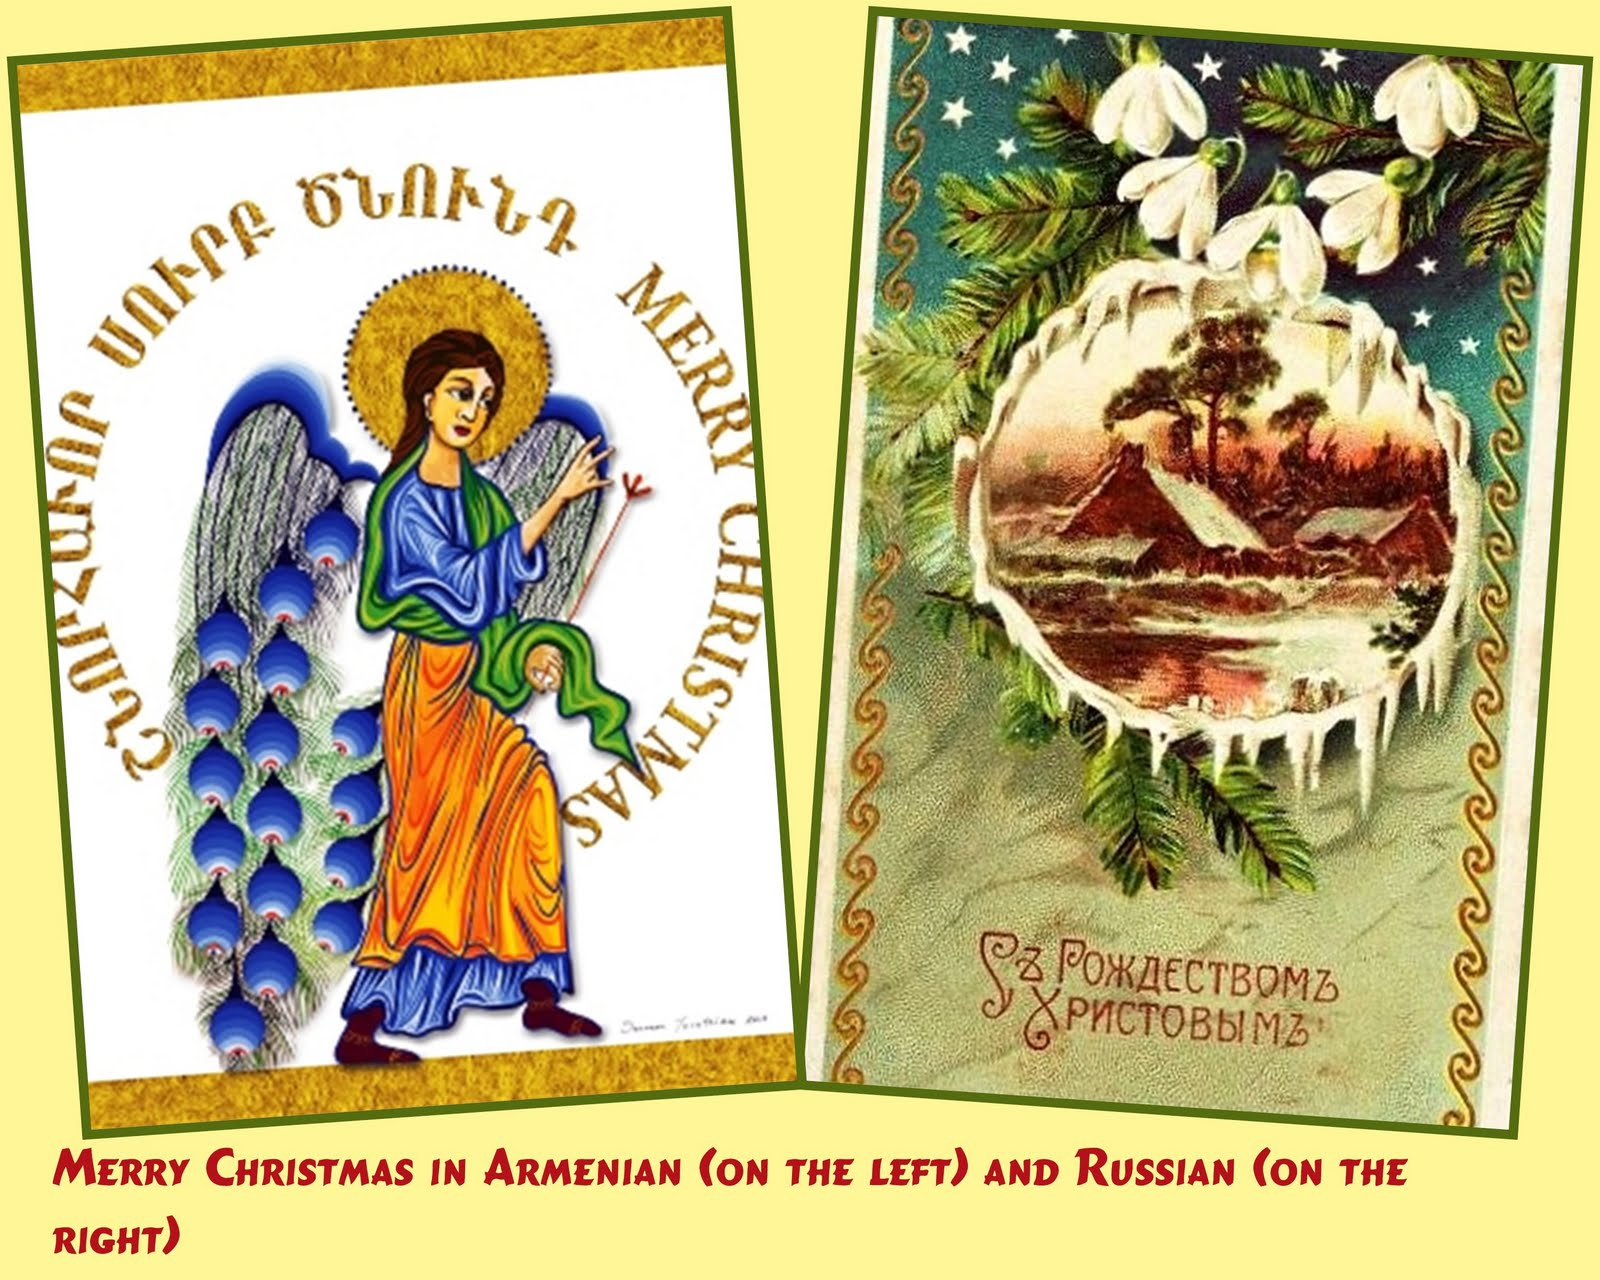 Armenian easter greeting merry christmas and happy new year 2018 armenian easter greeting kristyandbryce Images